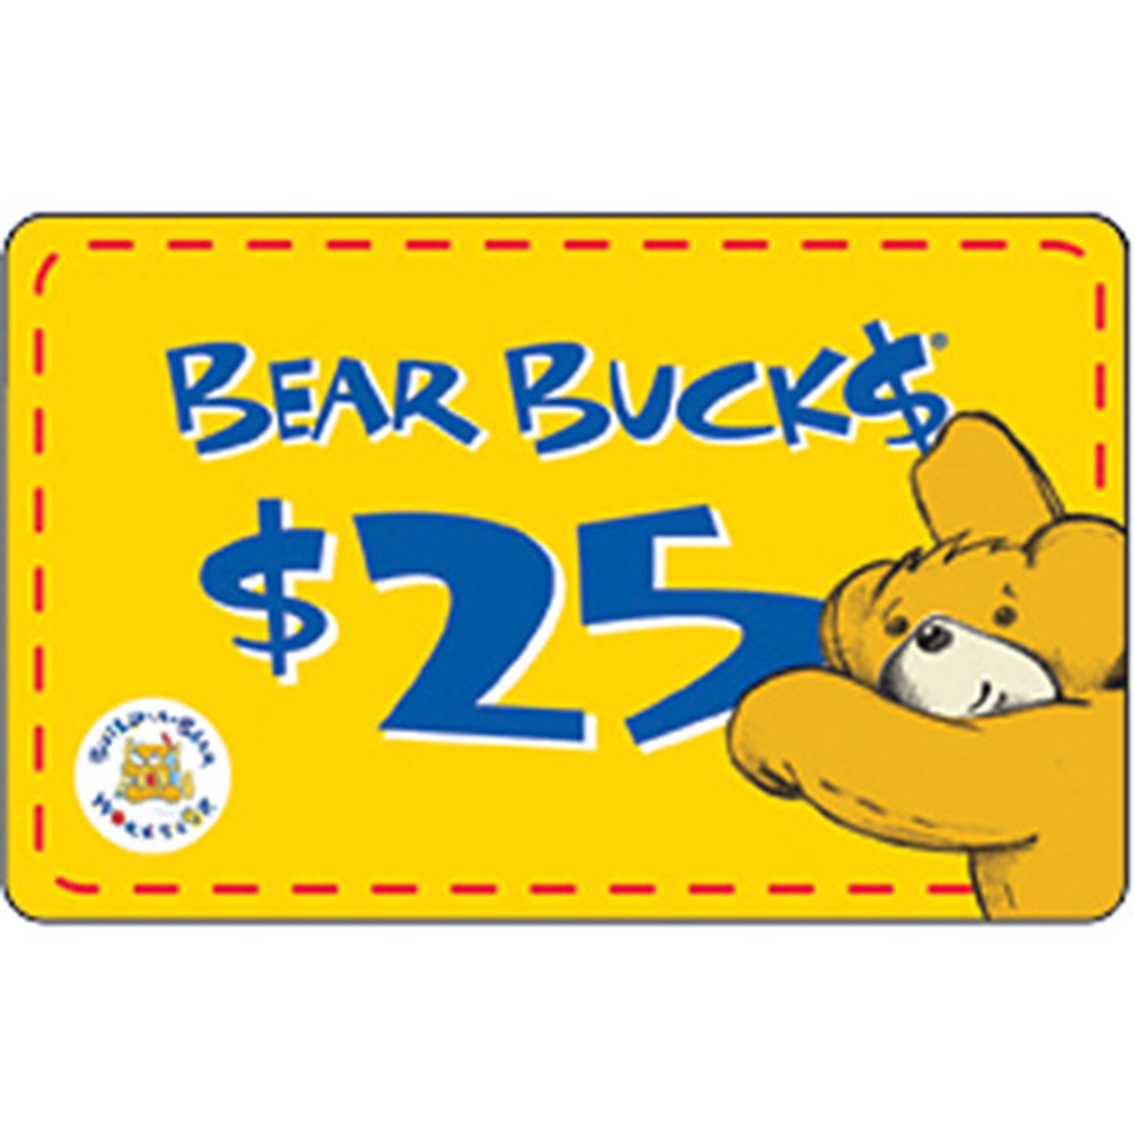 Build-a-bear Workshop Gift Card | Home | Gifts, Food & Seasonal | Shop